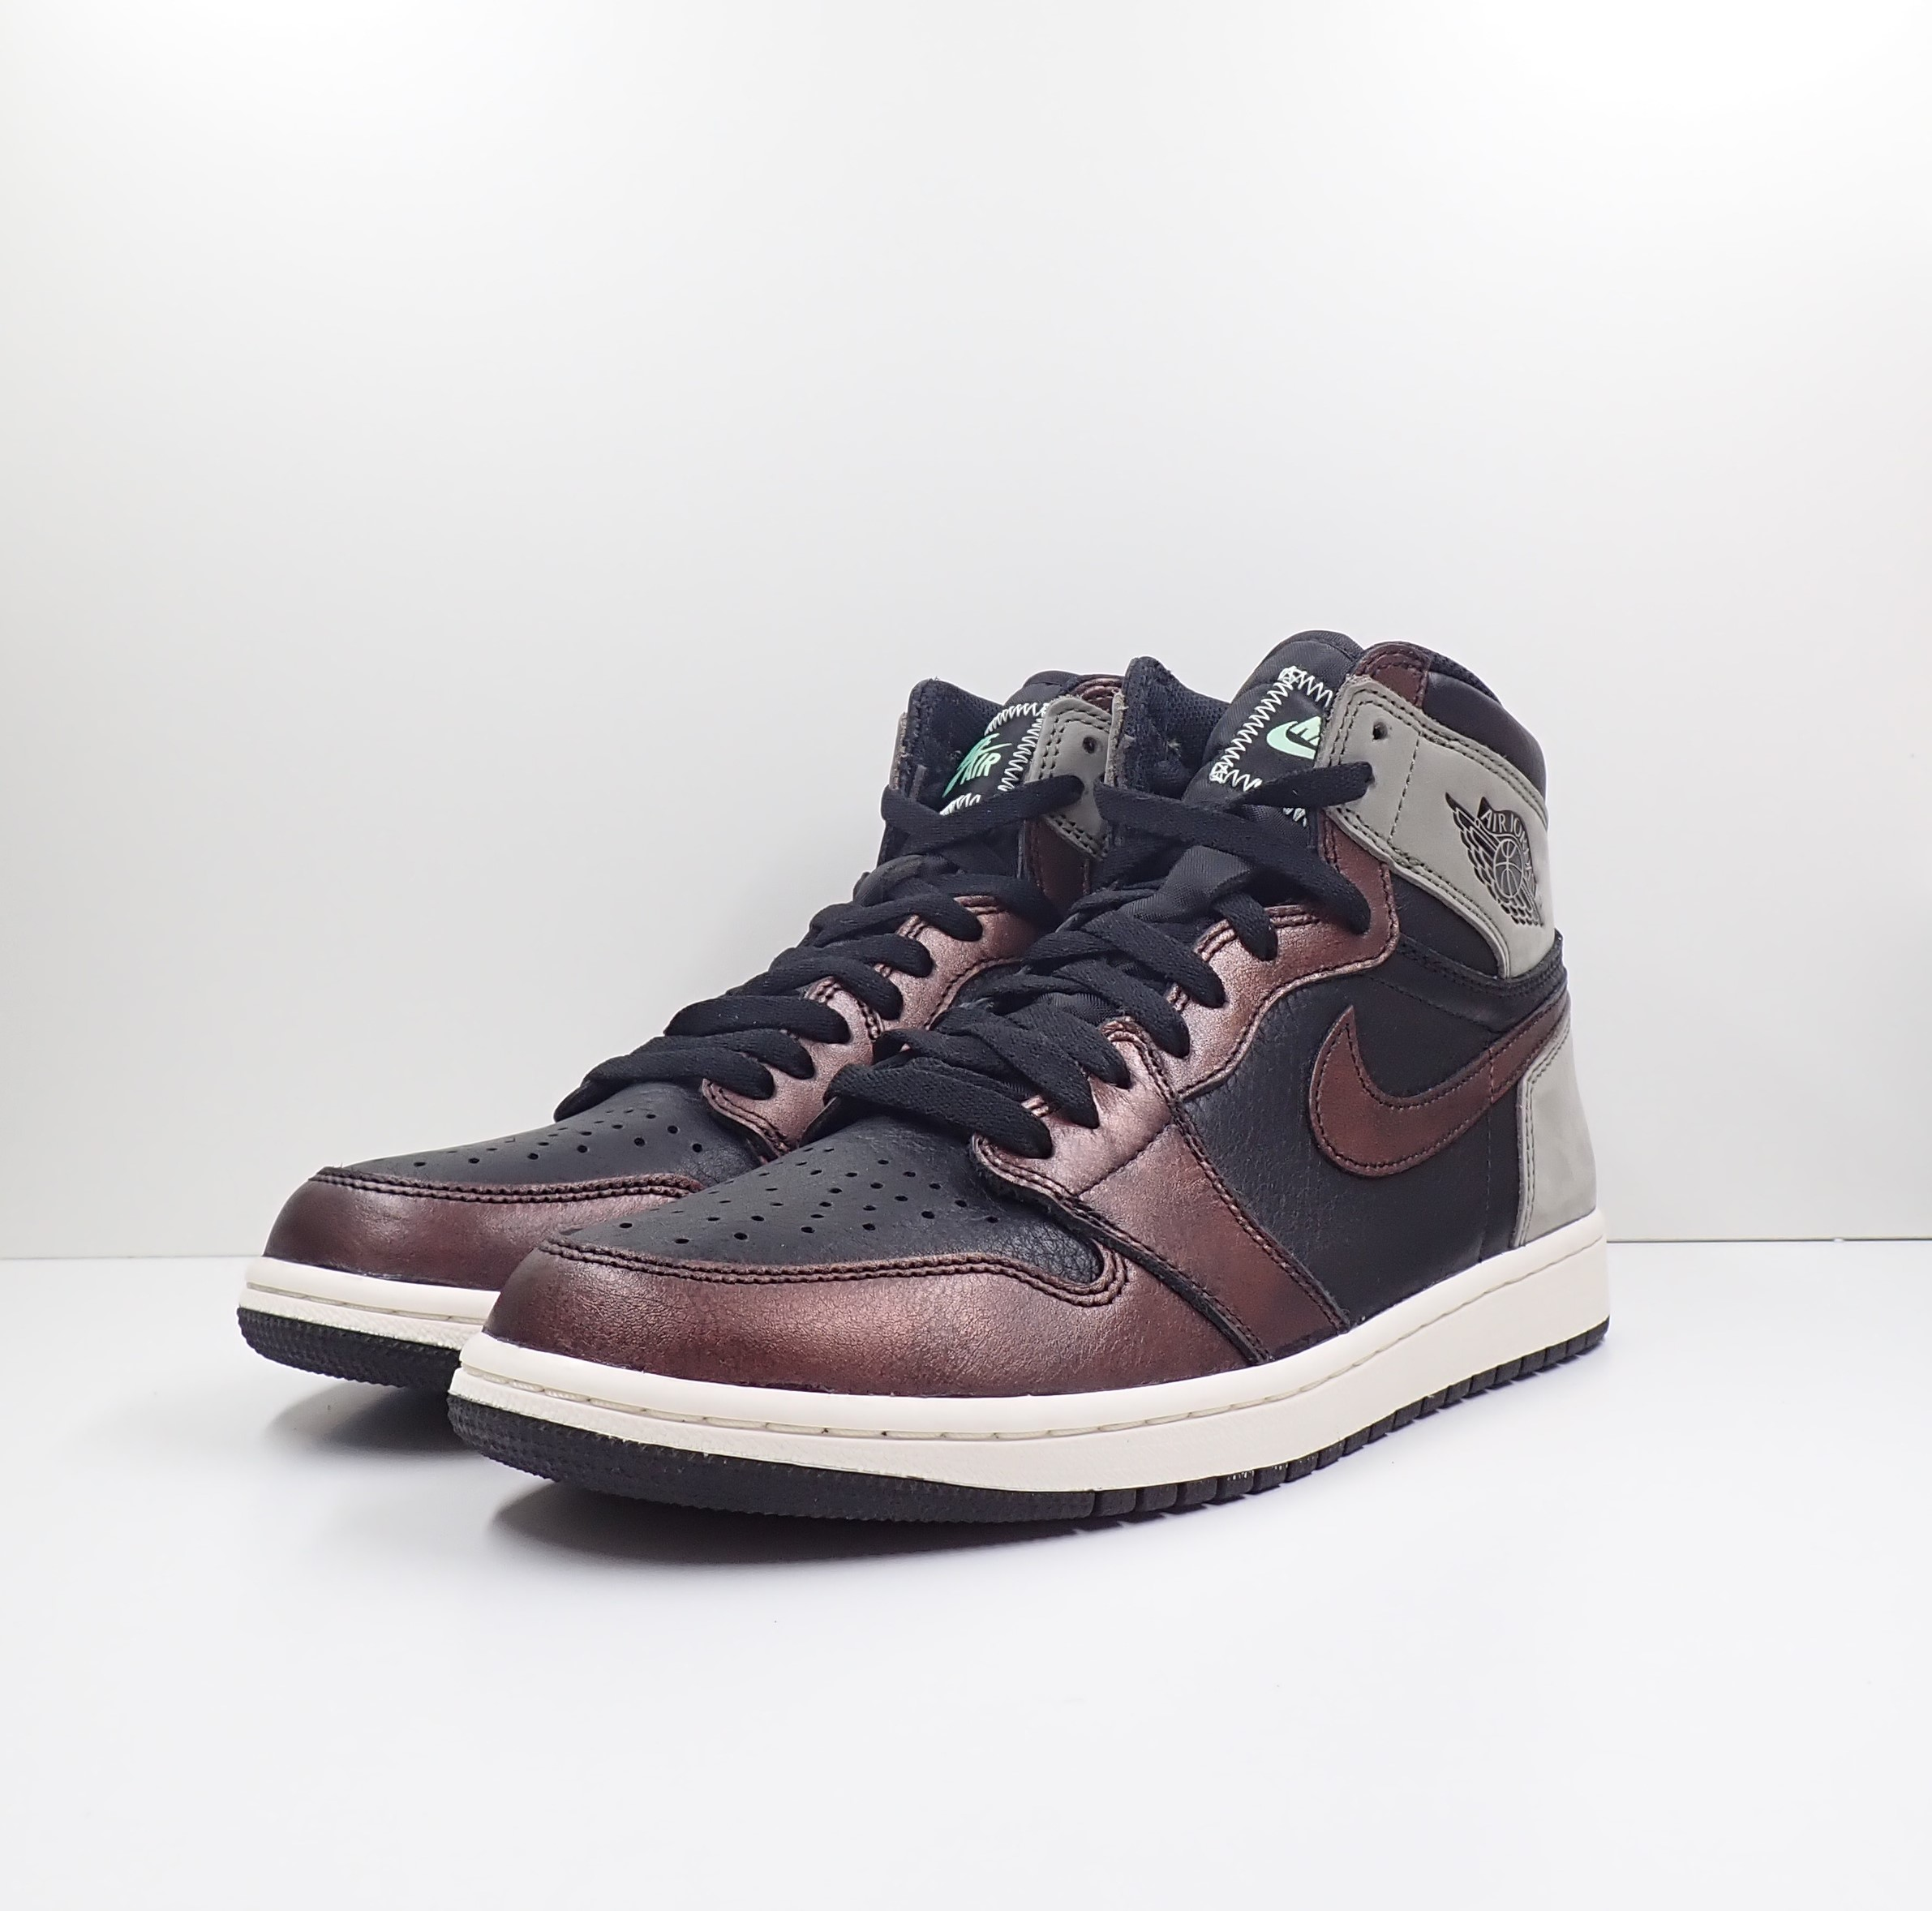 Jordan 1 Retro High Rust Shadow